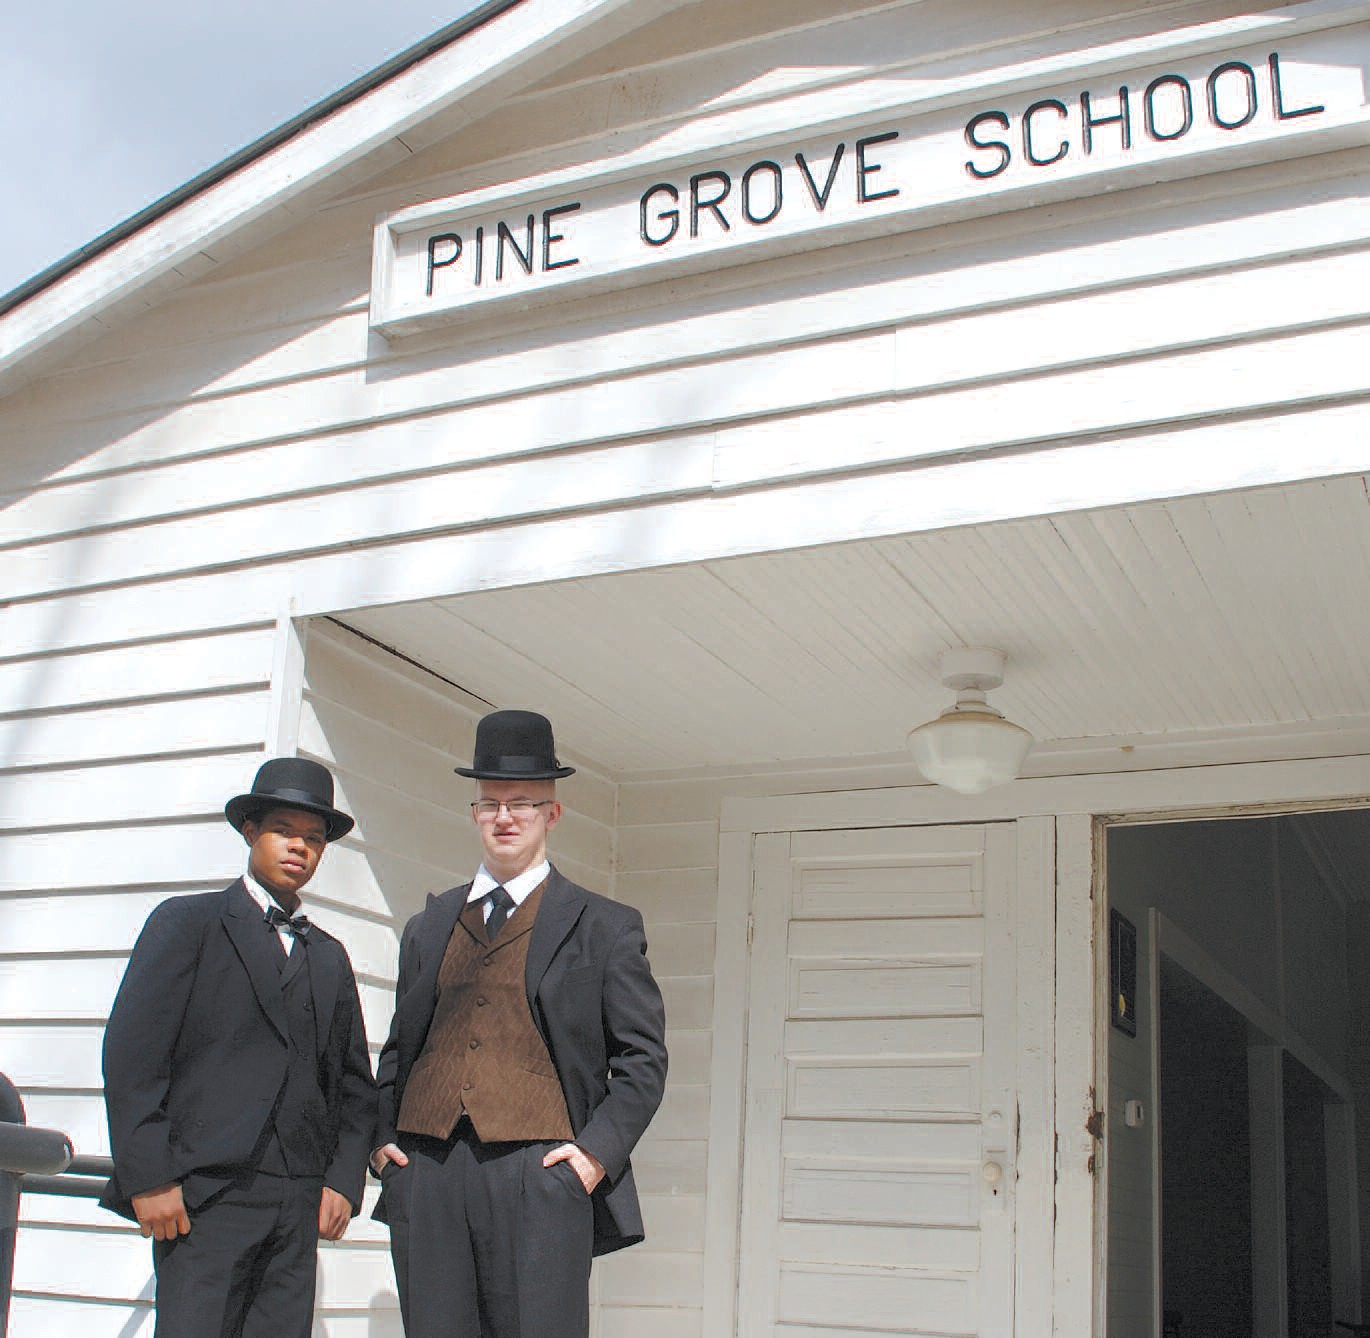 Pine Grove Rosenwald School holds Heritage Celebration in honor of Black History Month